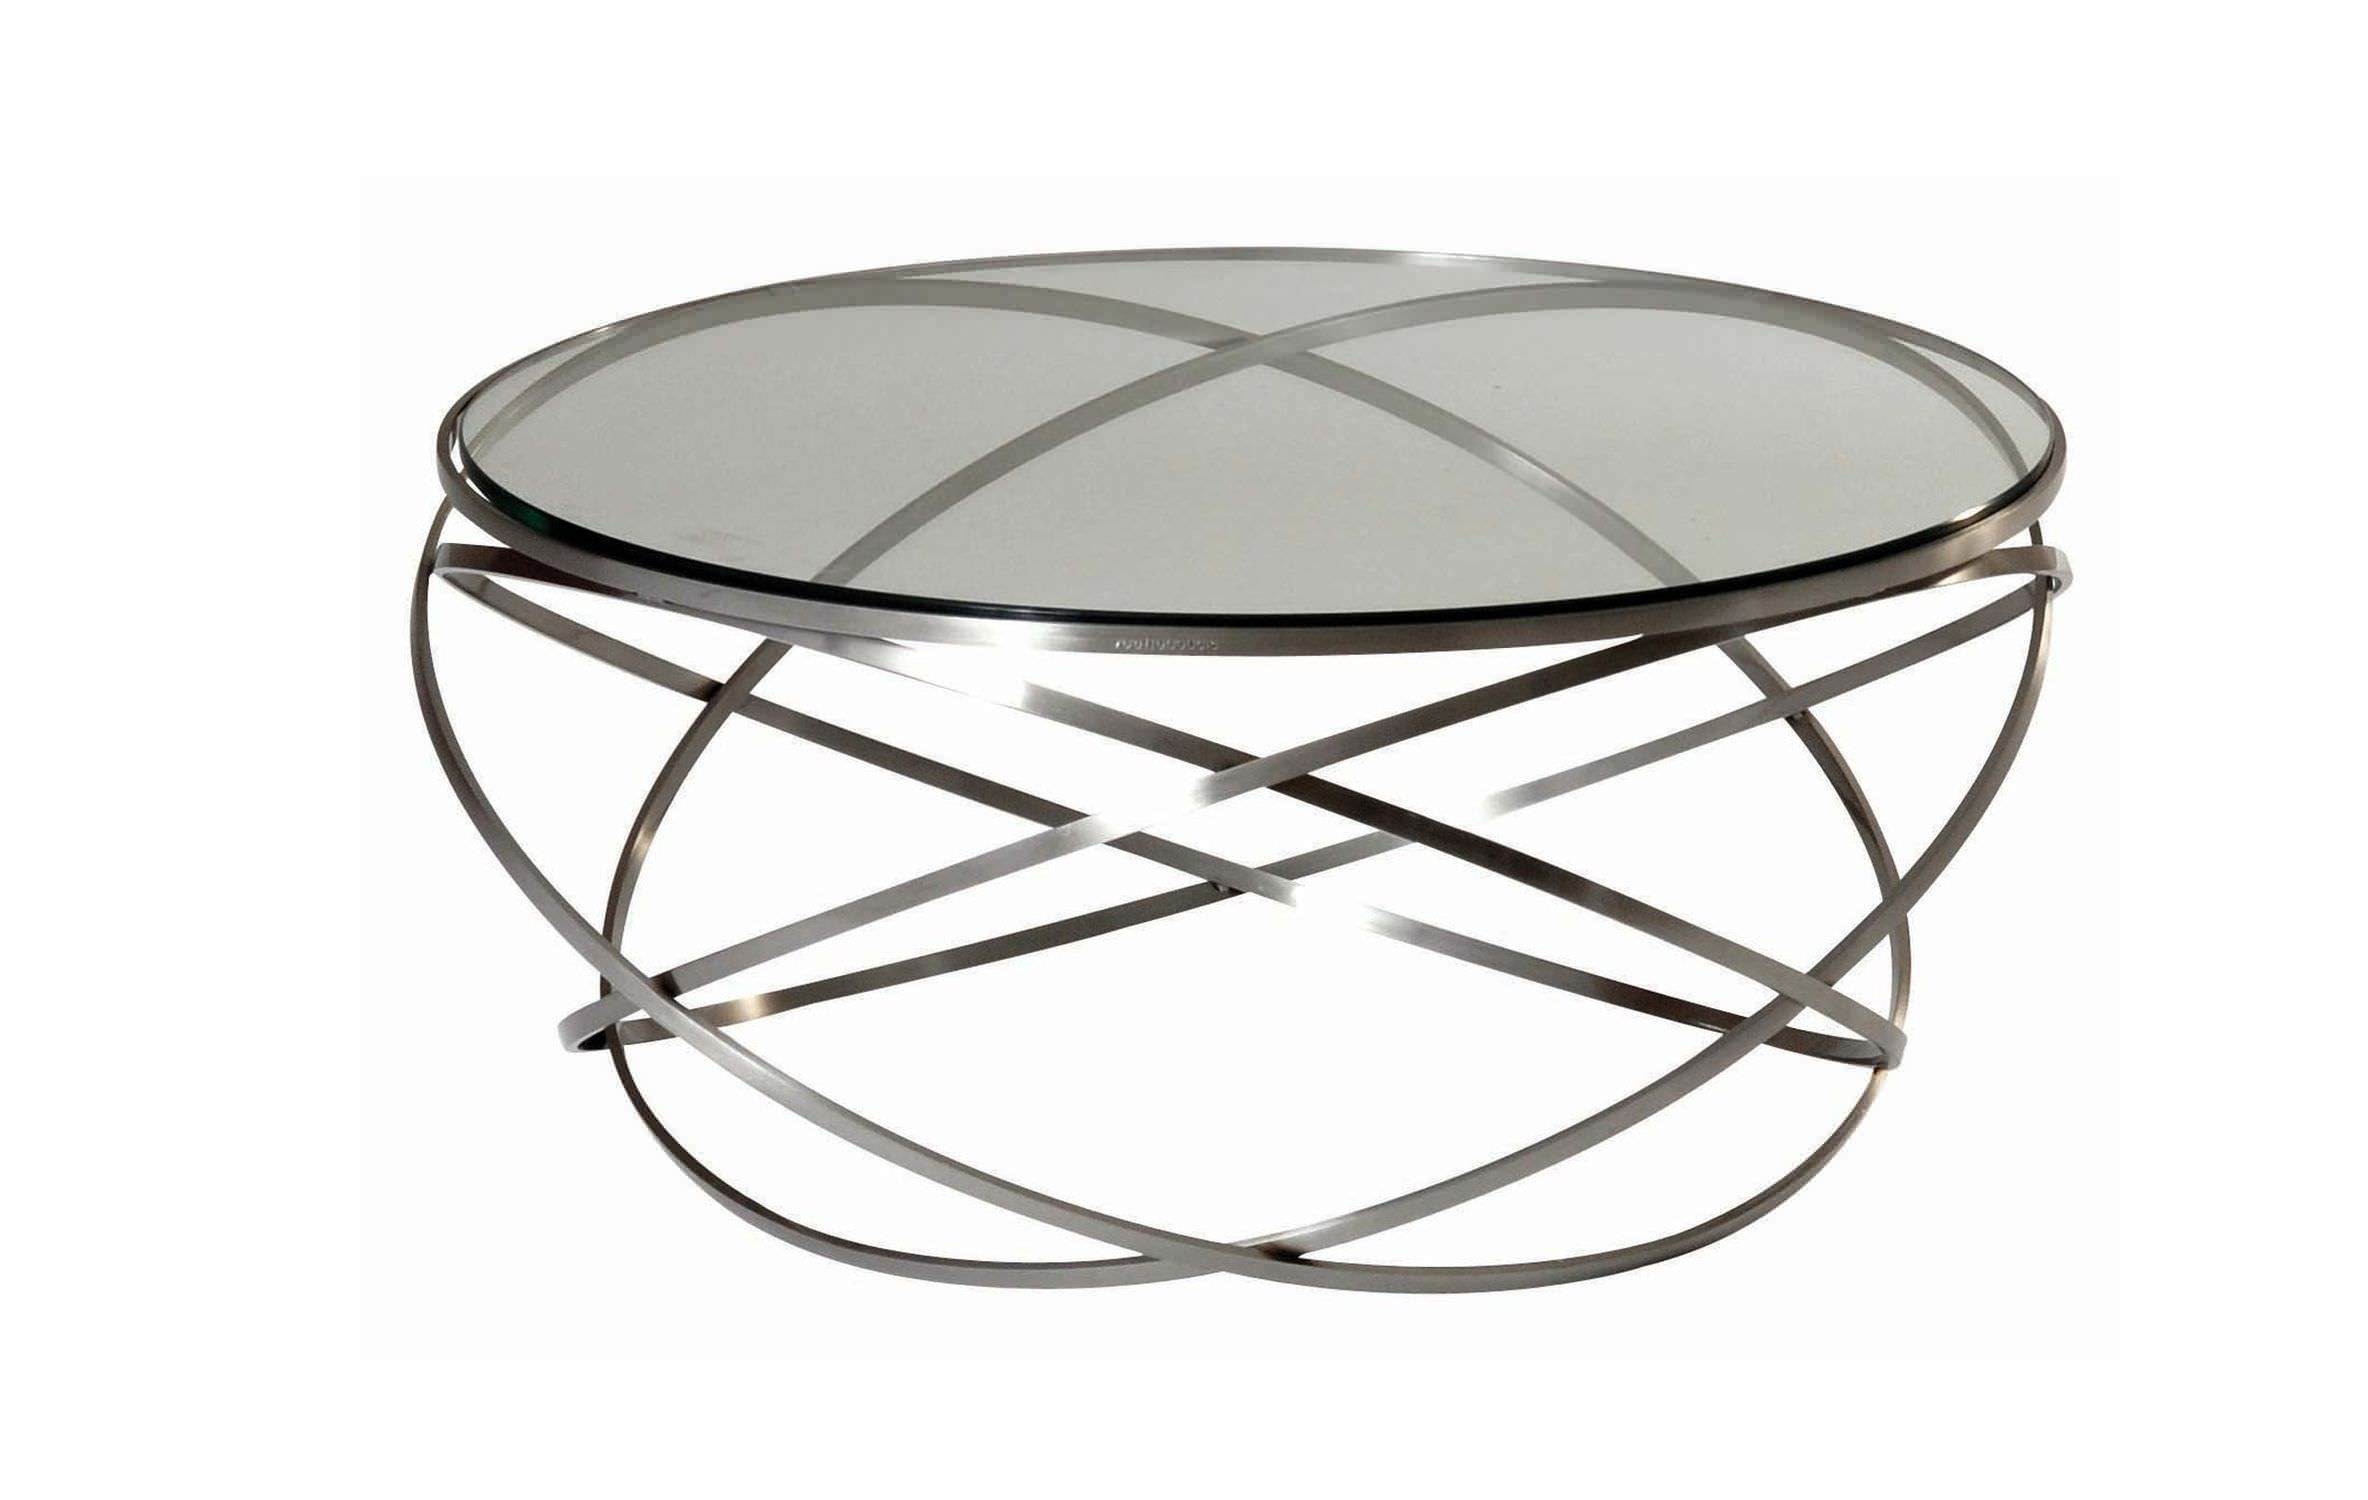 Table basse ronde en verre design id es de d coration for Table basse design ronde